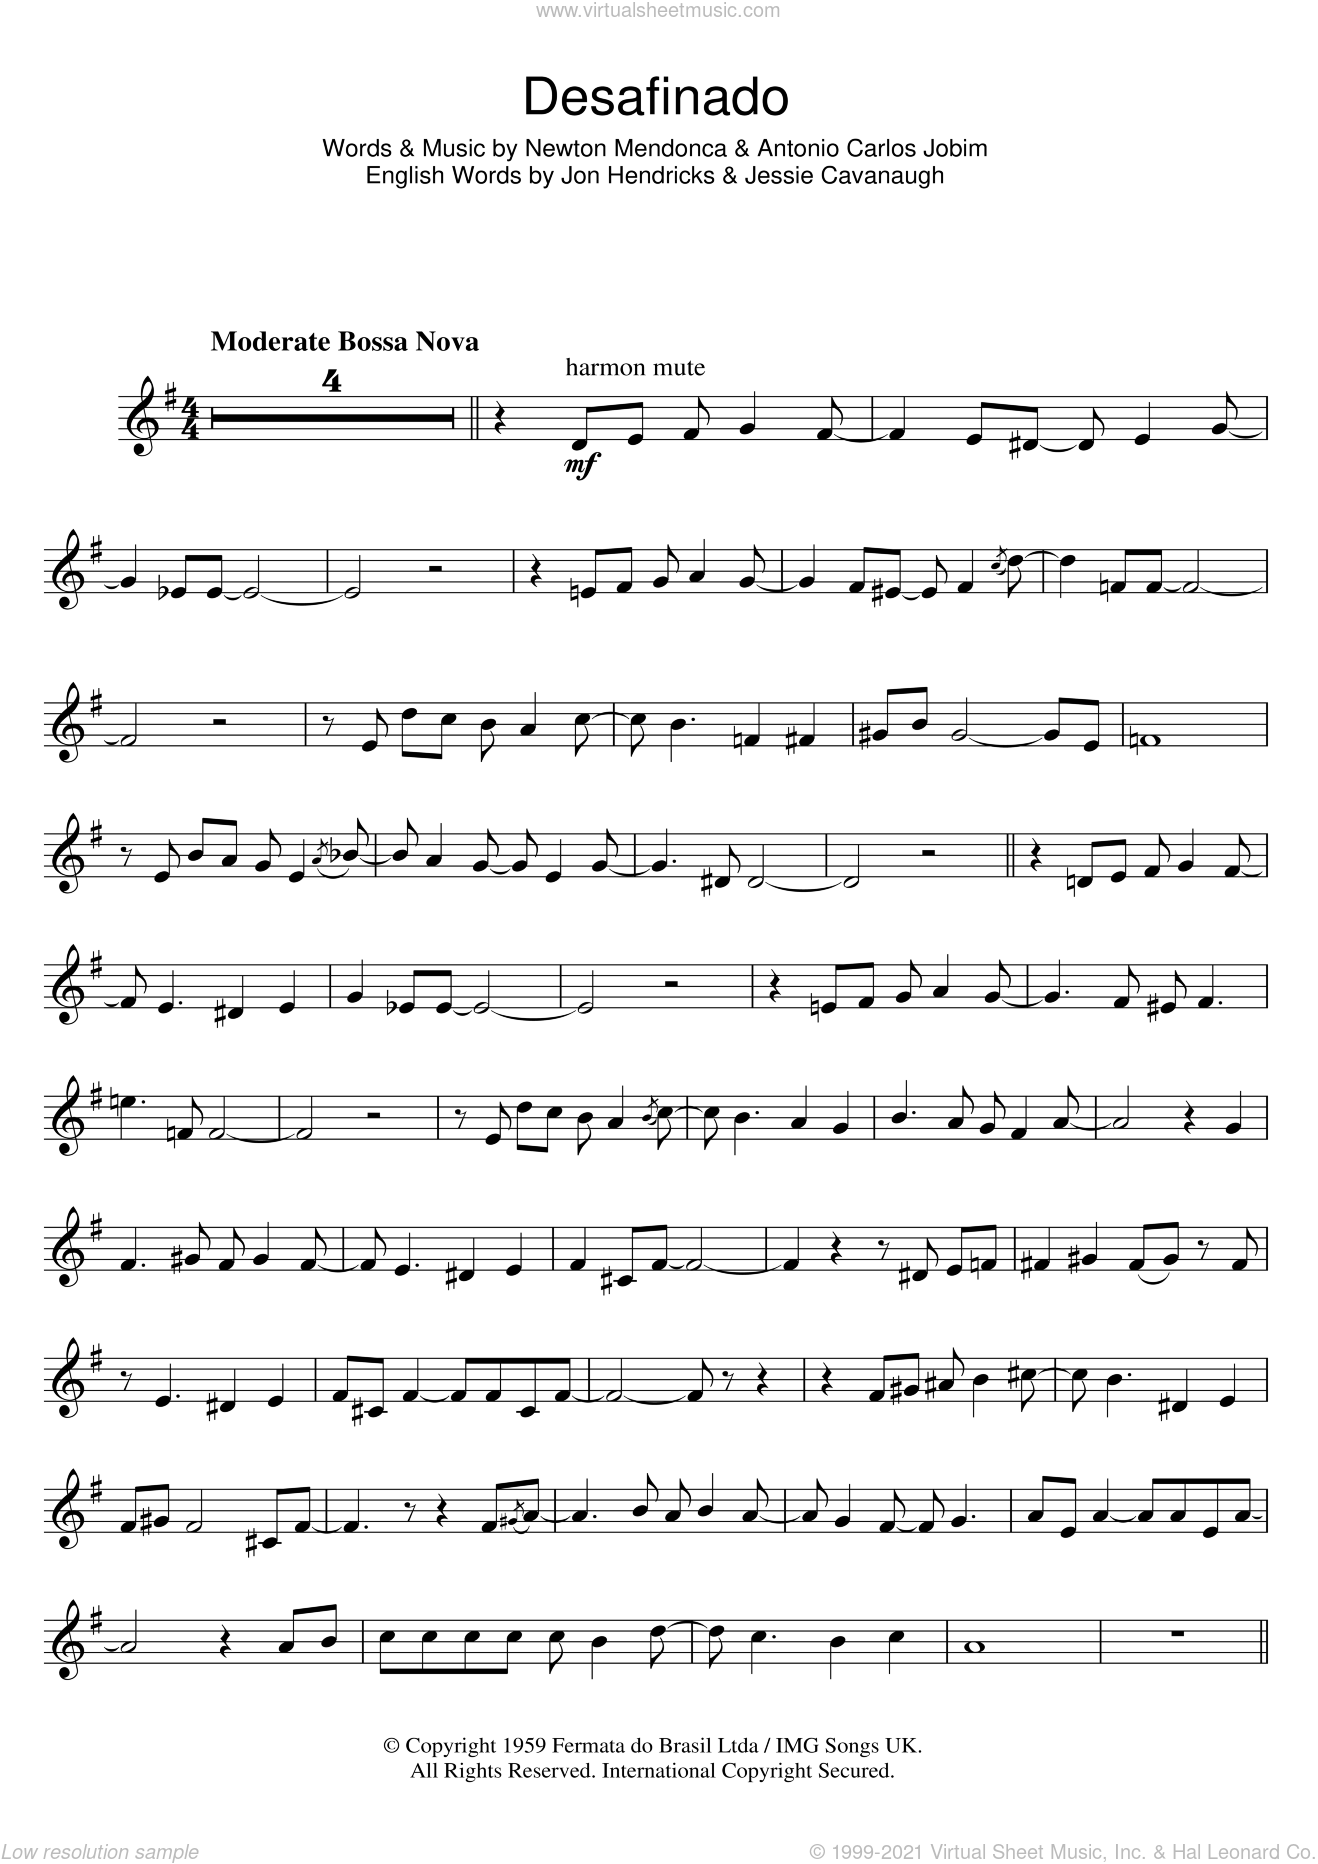 Desafinado (Slightly Out Of Tune) sheet music for trumpet solo by Newton Mendonca, Antonio Carlos Jobim and Jon Hendricks. Score Image Preview.